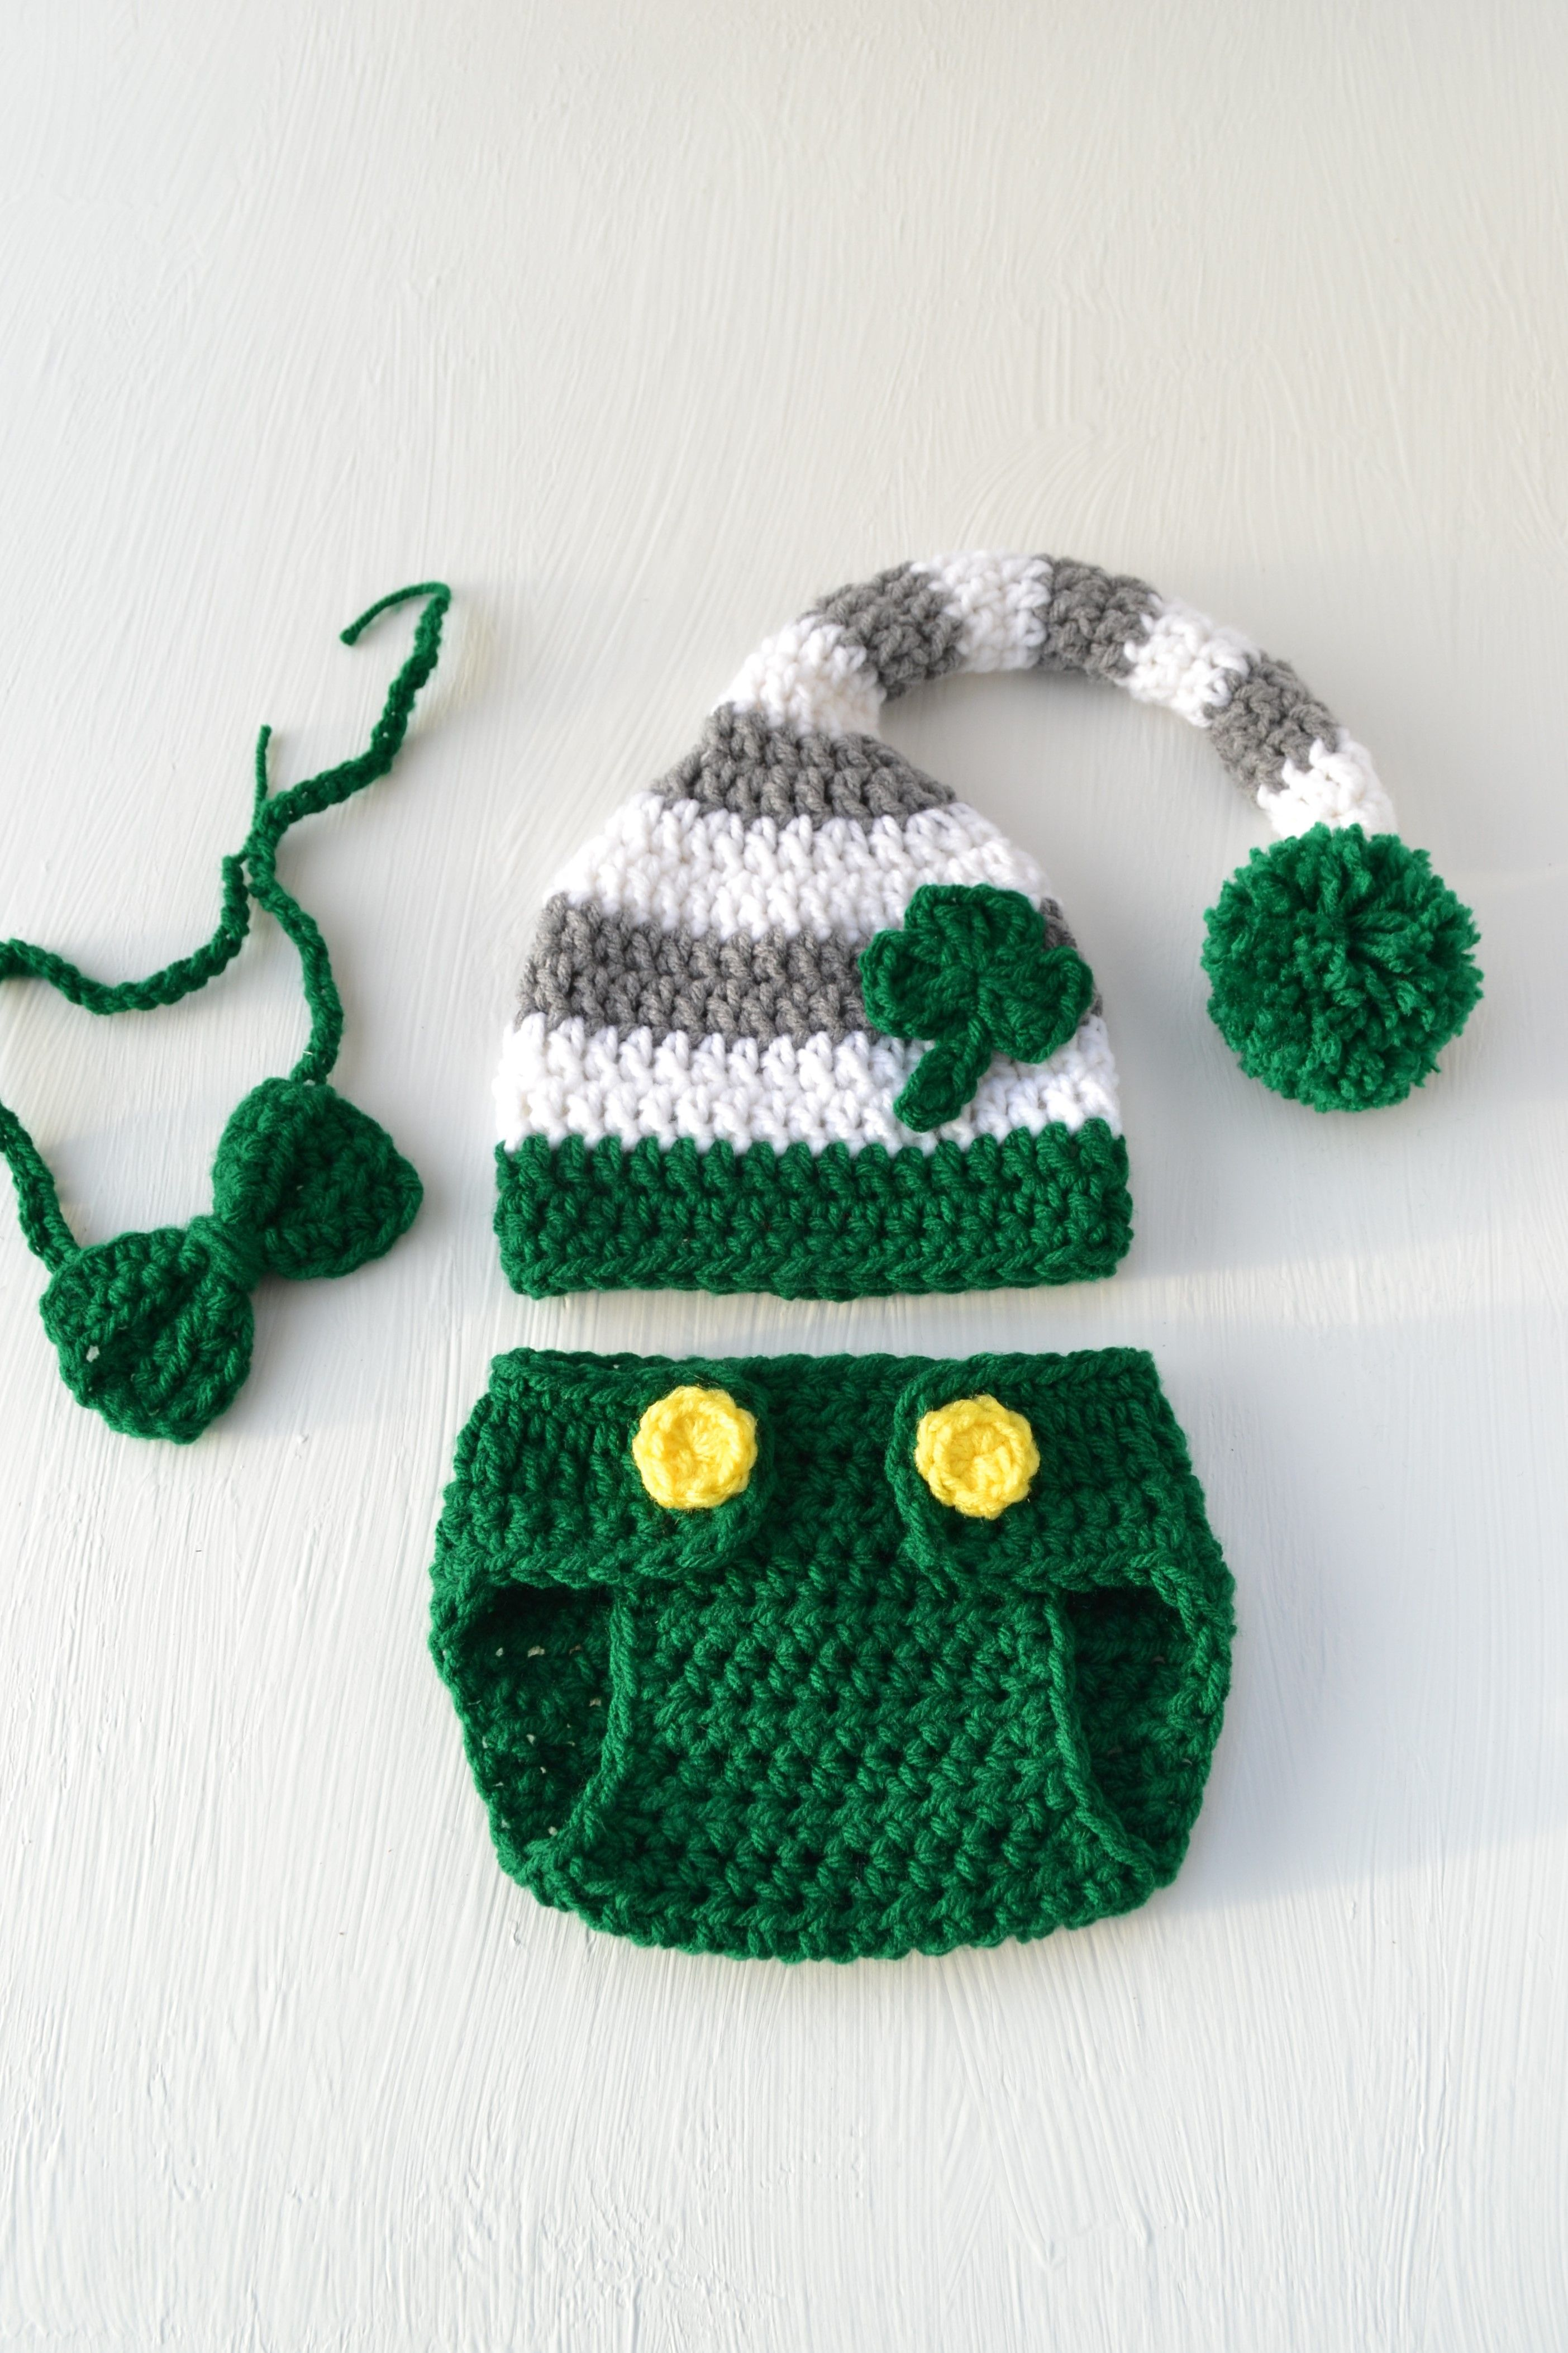 Shop for St. Patrick s Day baby outfit at my  etsy shop  Crochet St.  Patrick s Day Leprechaun Hat Bow Tie Green Newborn Baby Photography Prop  Newborn Photo ... d655c2527bff